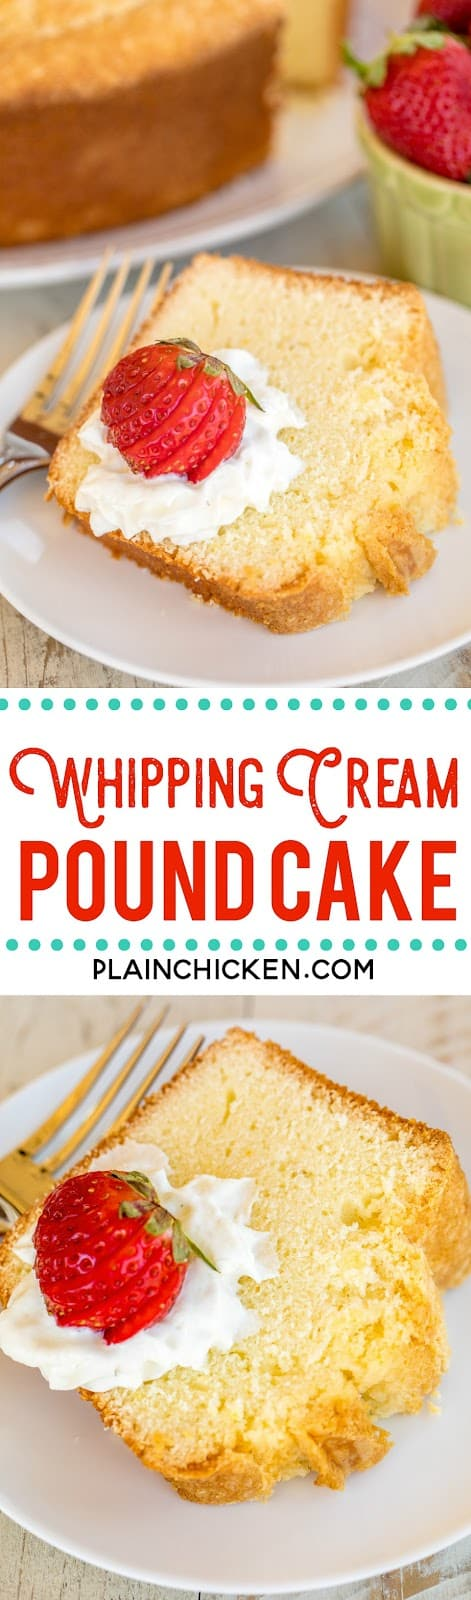 Whipping Cream Pound Cake - I've been making this cake for over 20 years and it never fails me! Seriously DELICIOUS!!! The key to success is to have all your ingredients at room temperature. Butter, sugar, eggs, cake flour, heavy cream, vanilla and orange extract. Can freeze leftover for a sweet treat later! Make this ASAP! #poundcake #dessert #cakerecipe